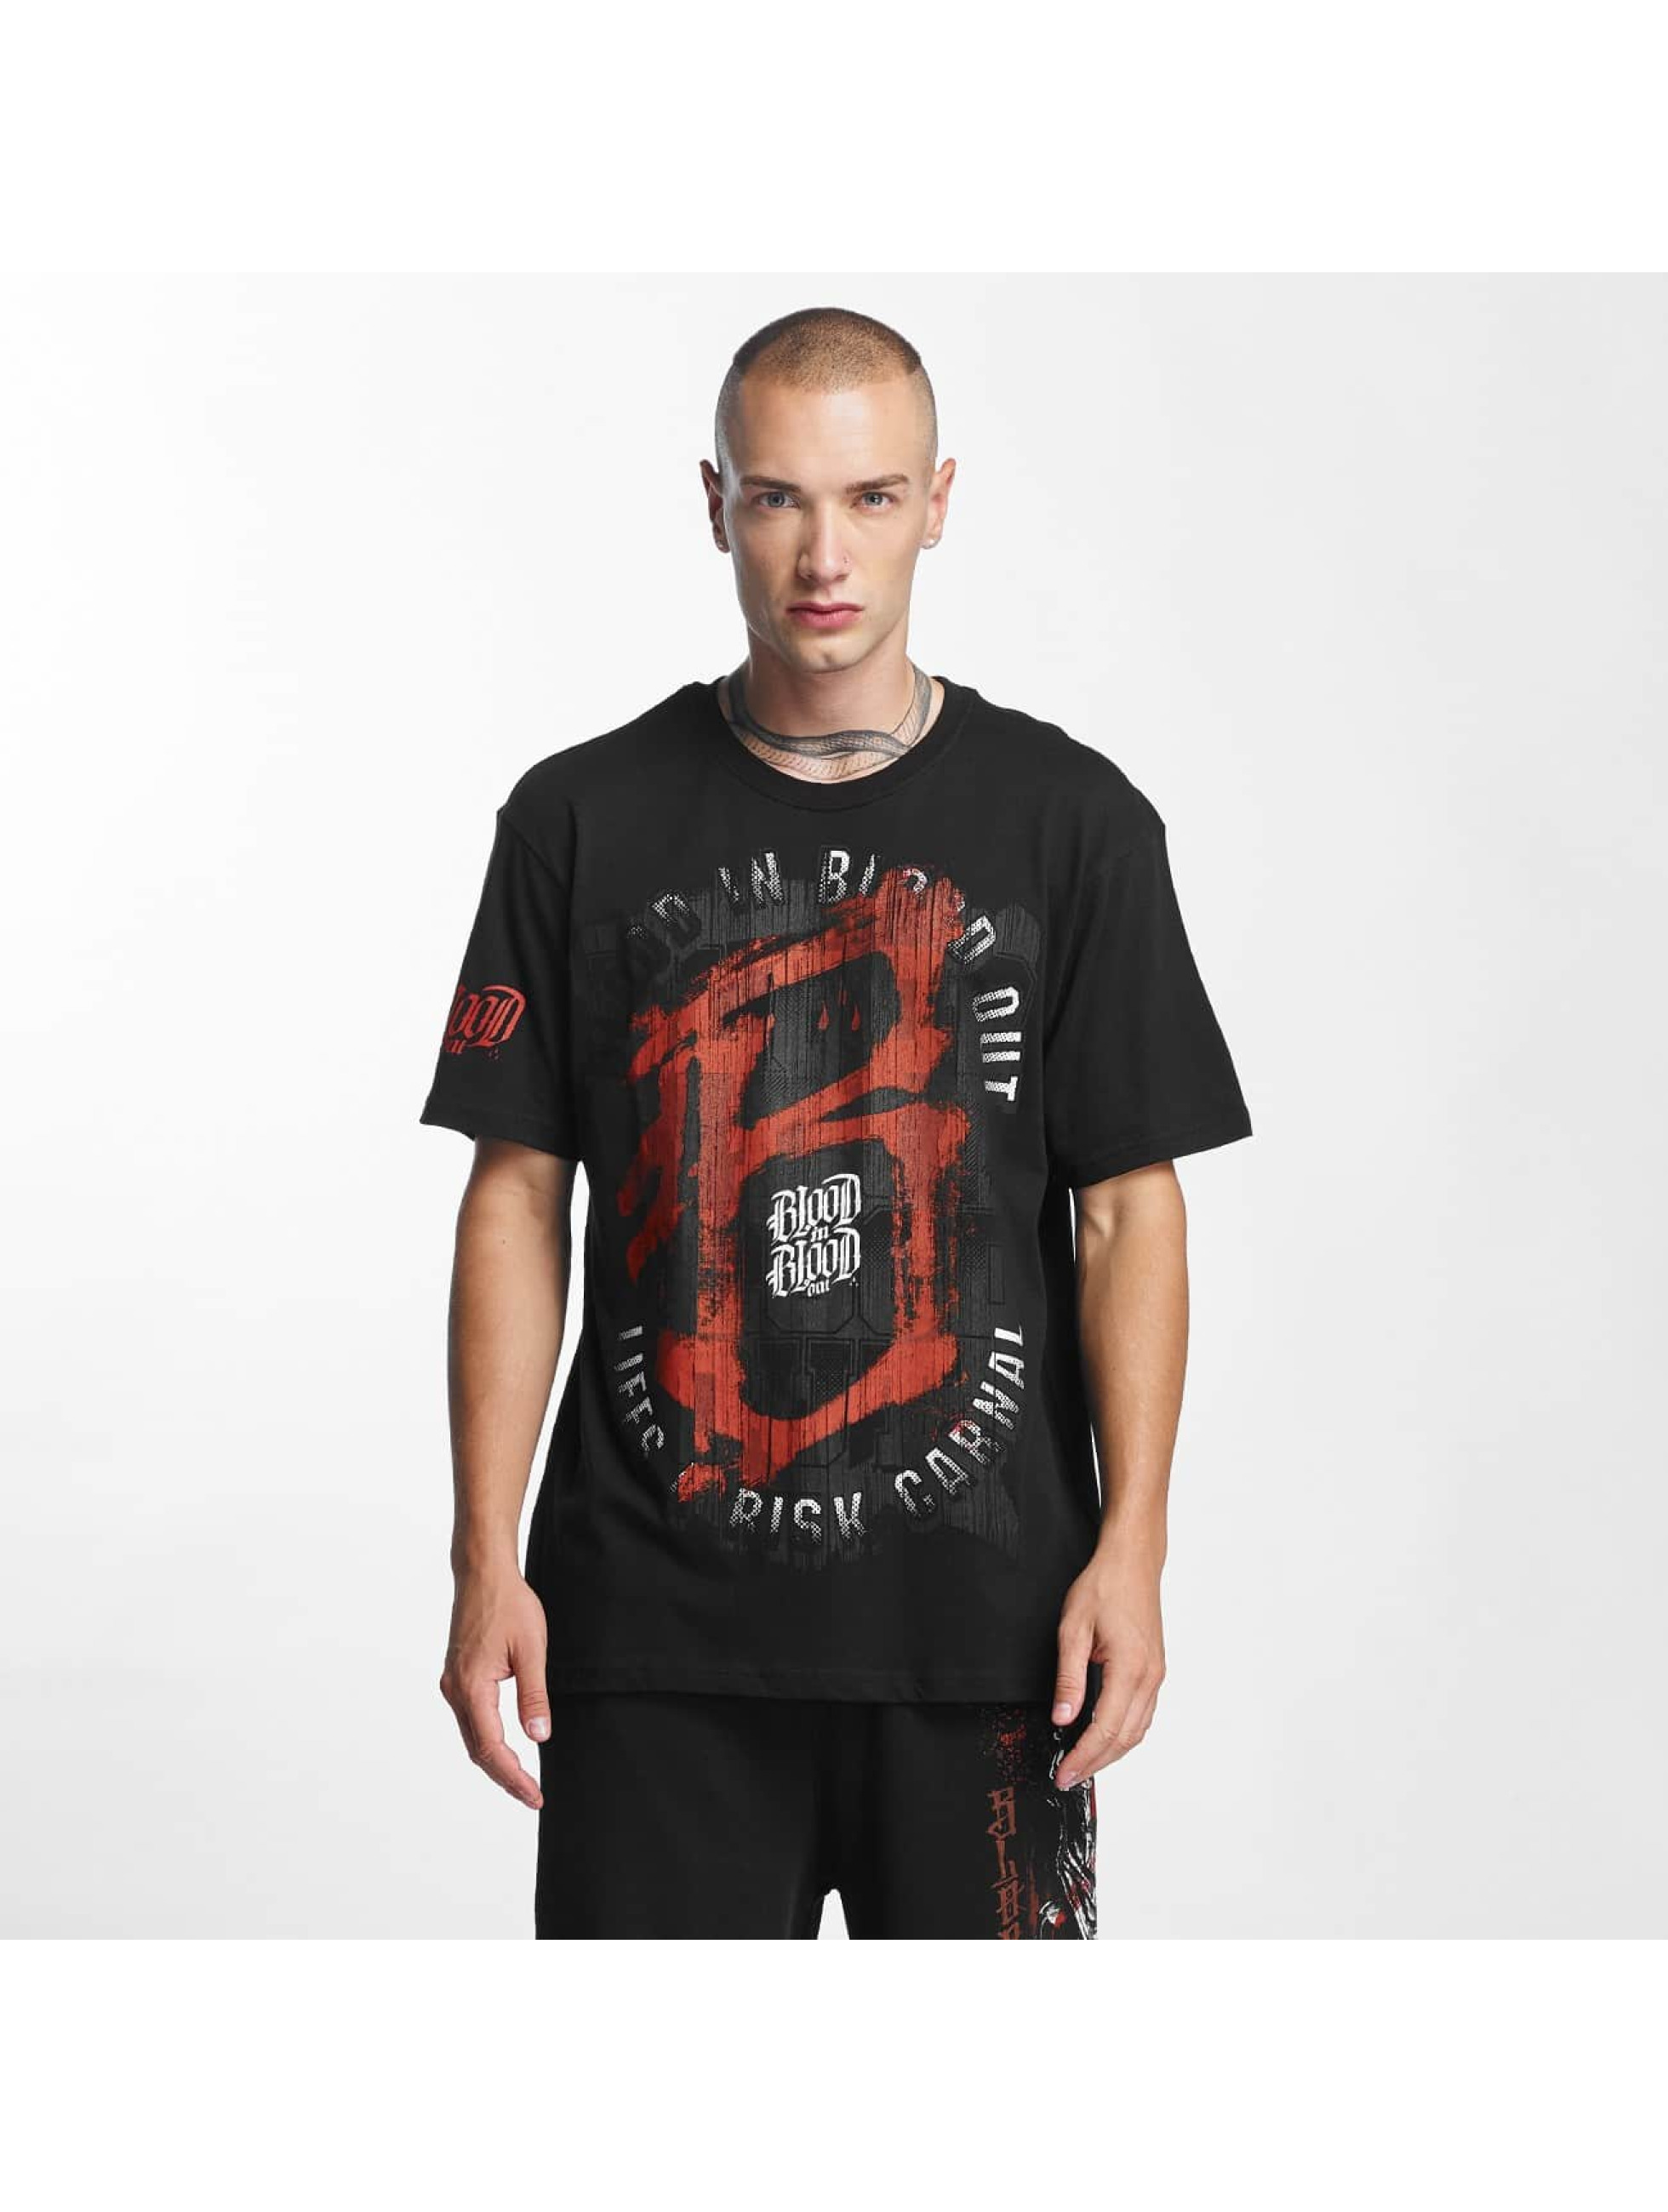 Blood In Blood Out Männer T-Shirt Life´s a Risk in schwarz